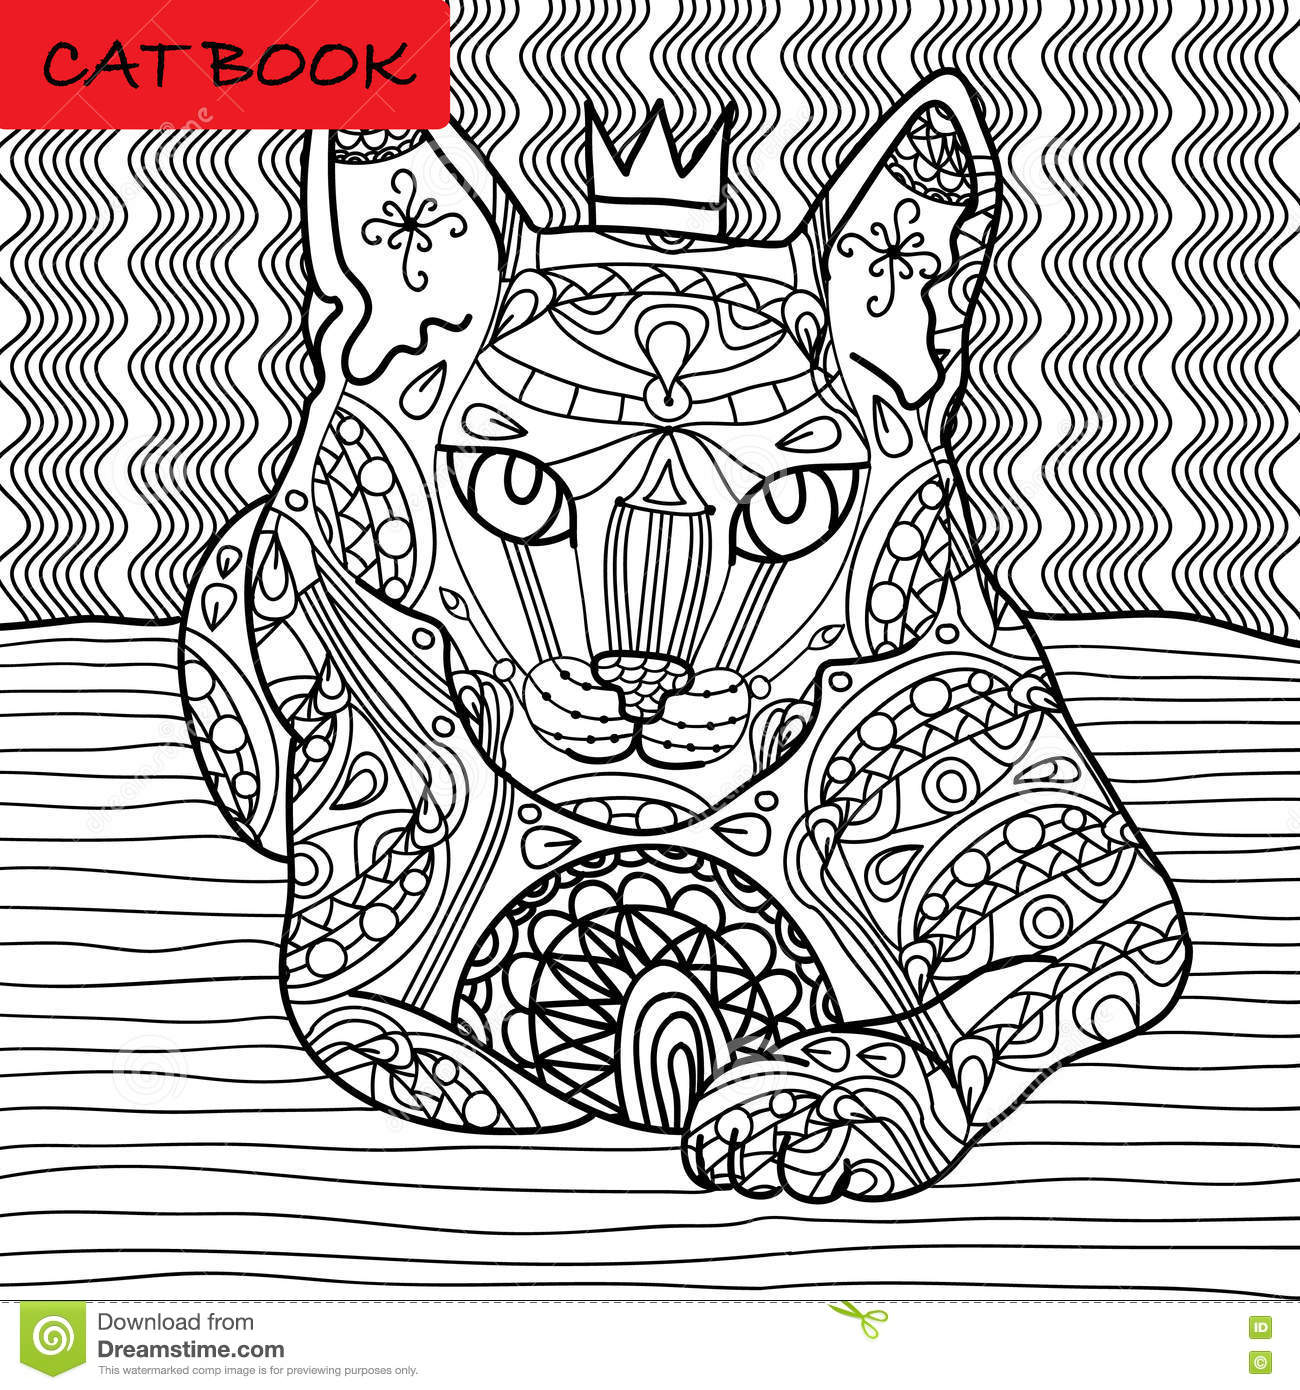 Coloring Cat Page For Adults Majestic With The Crown Looks Pensive Hand Drawn Illustration Patterns